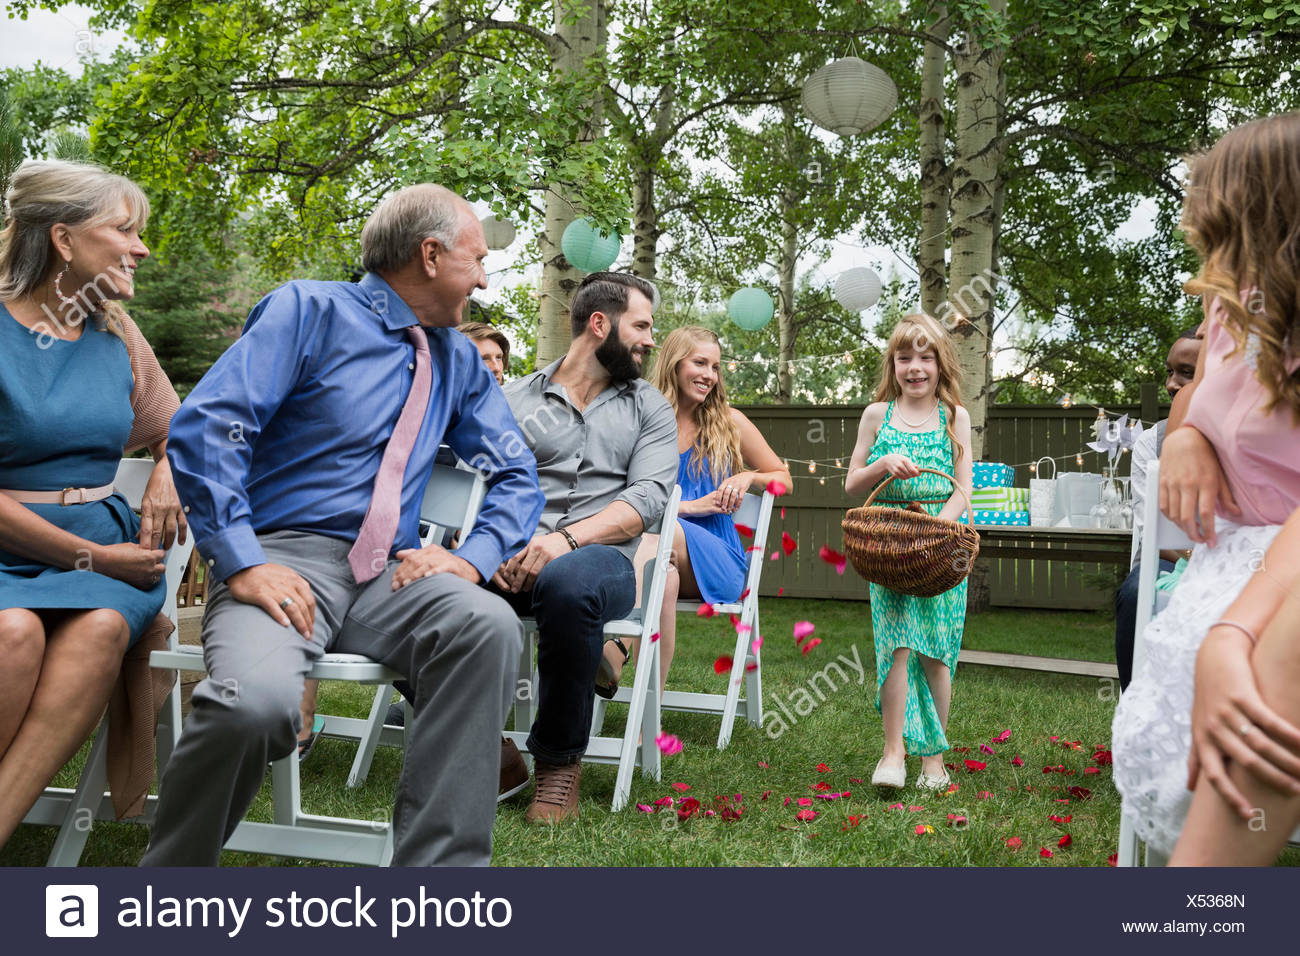 Wedding guests watching flower girl spread petals backyard - Stock Image